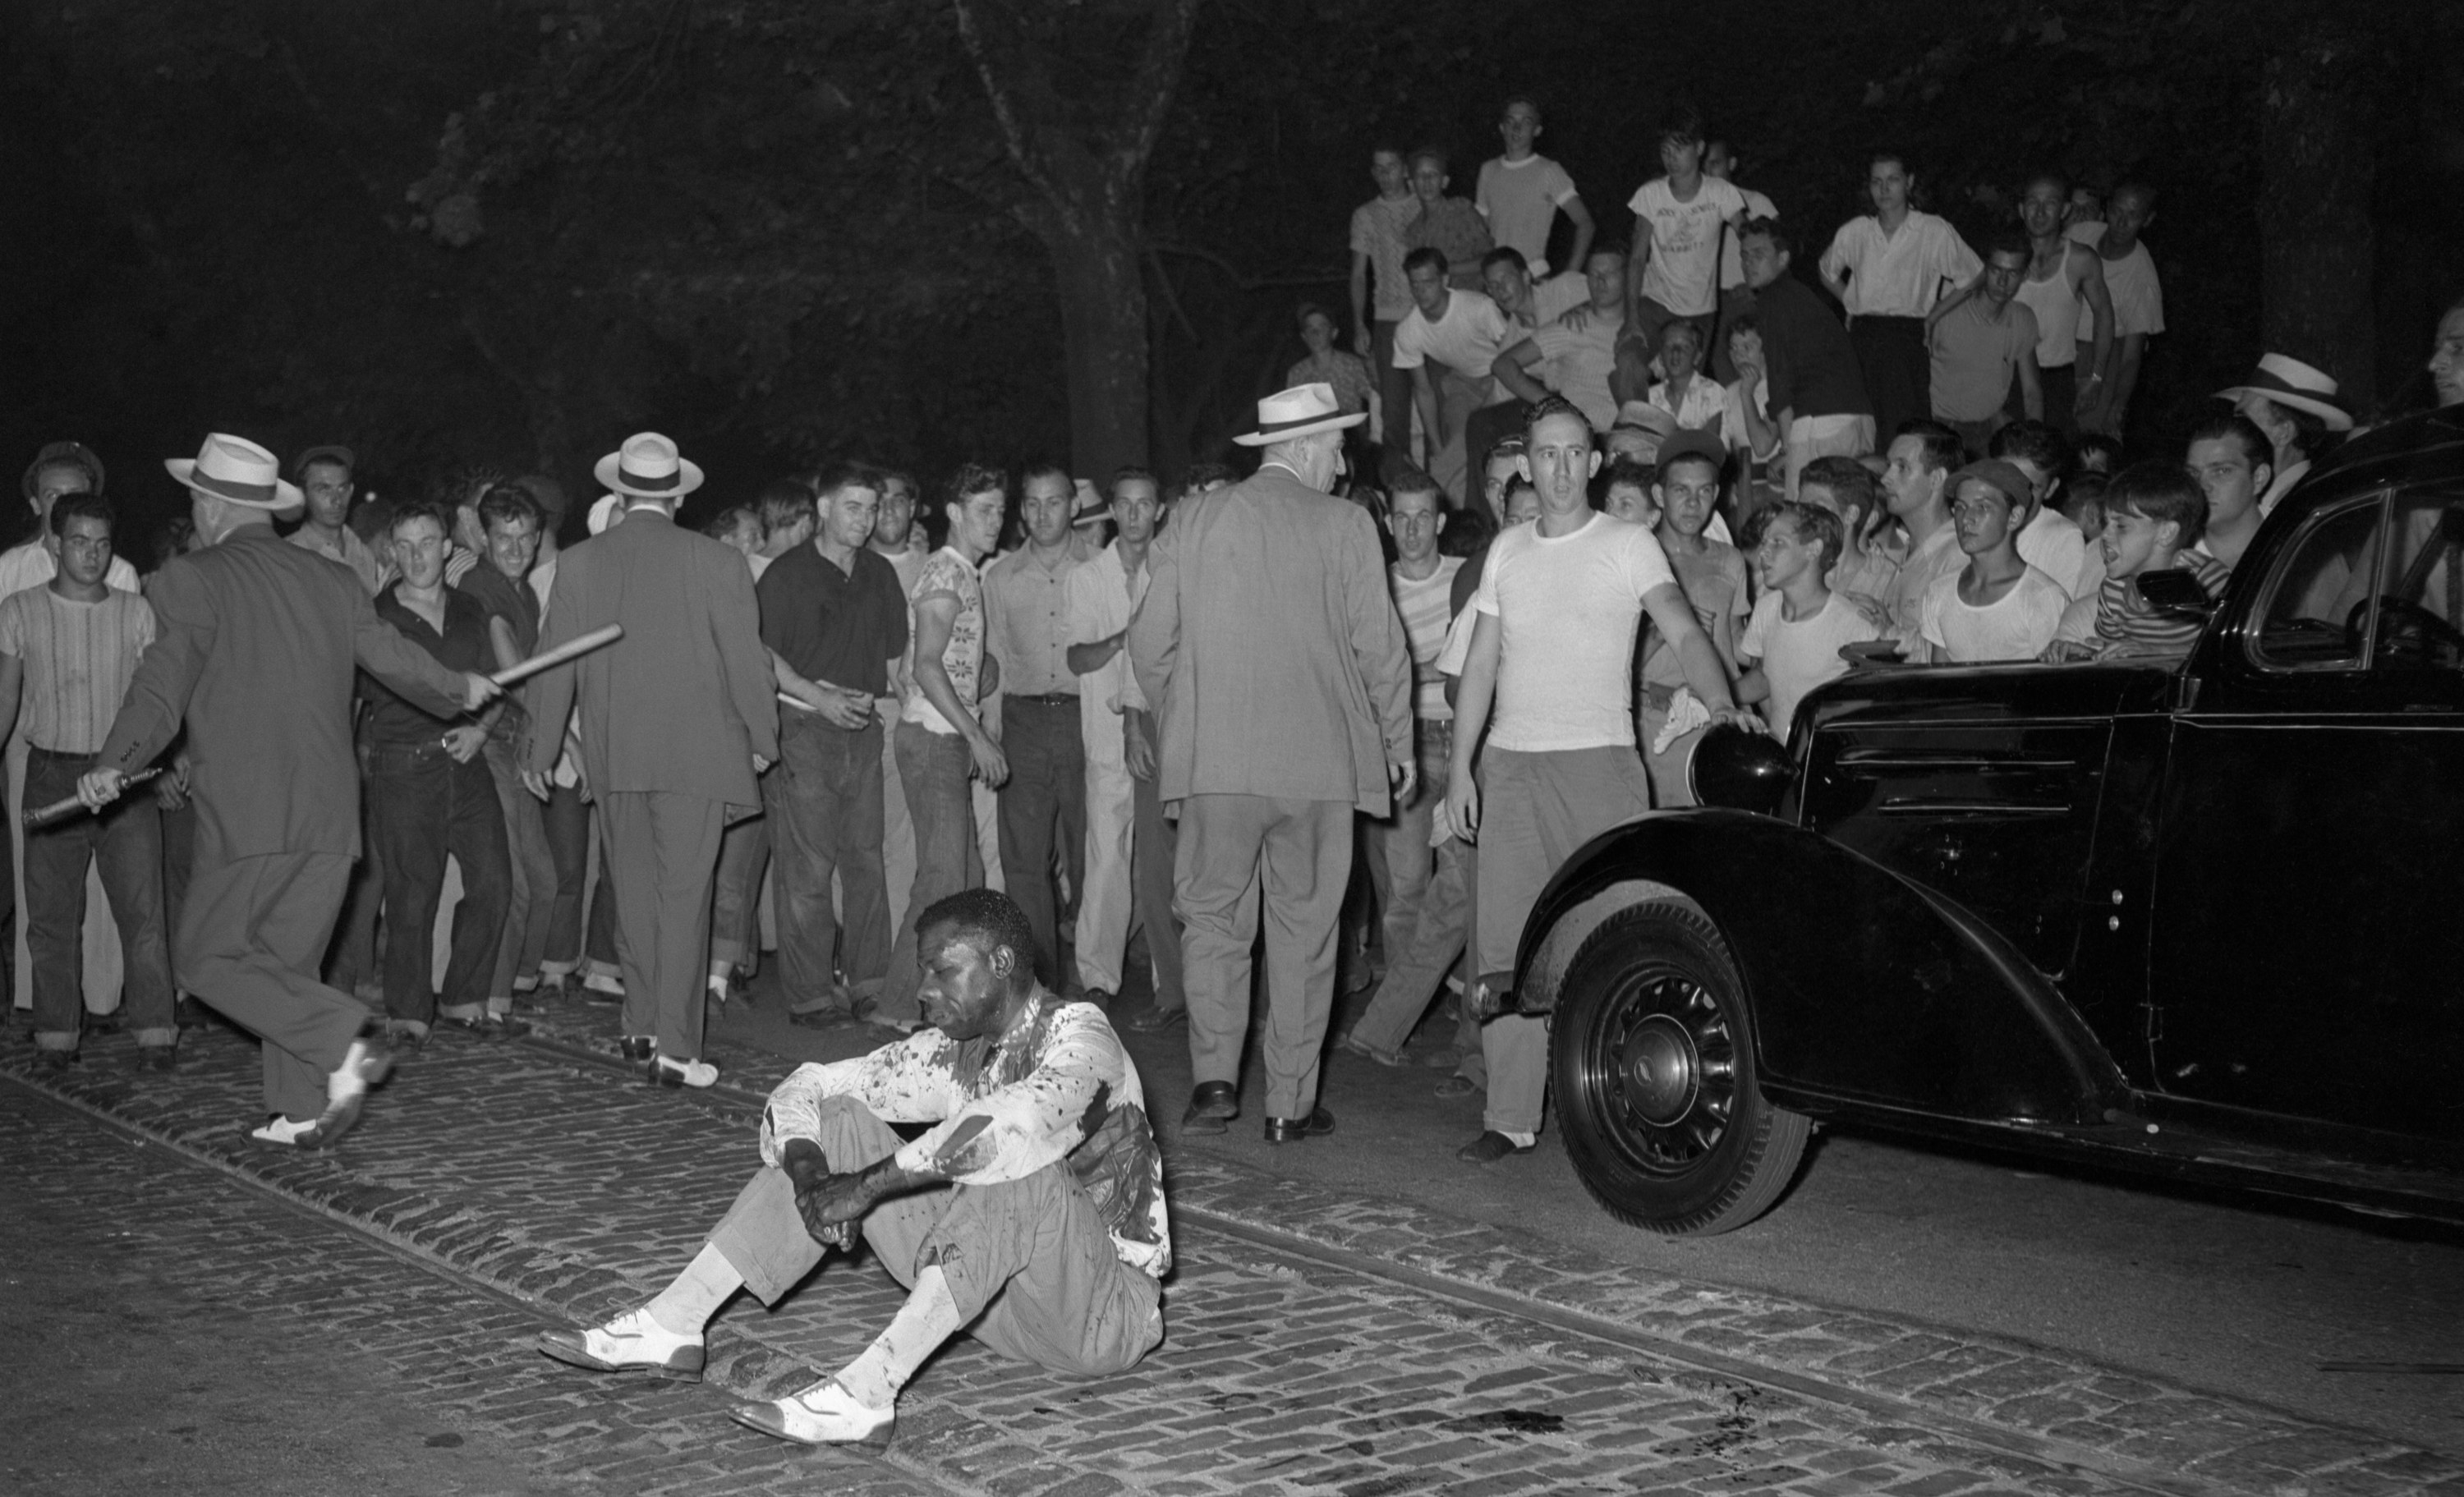 A beaten Black man sits in the street while police check members of the mob who attacked and stoned him during a race riot, which started when Black people were permitted to use public swimming pools along with whites for the first time